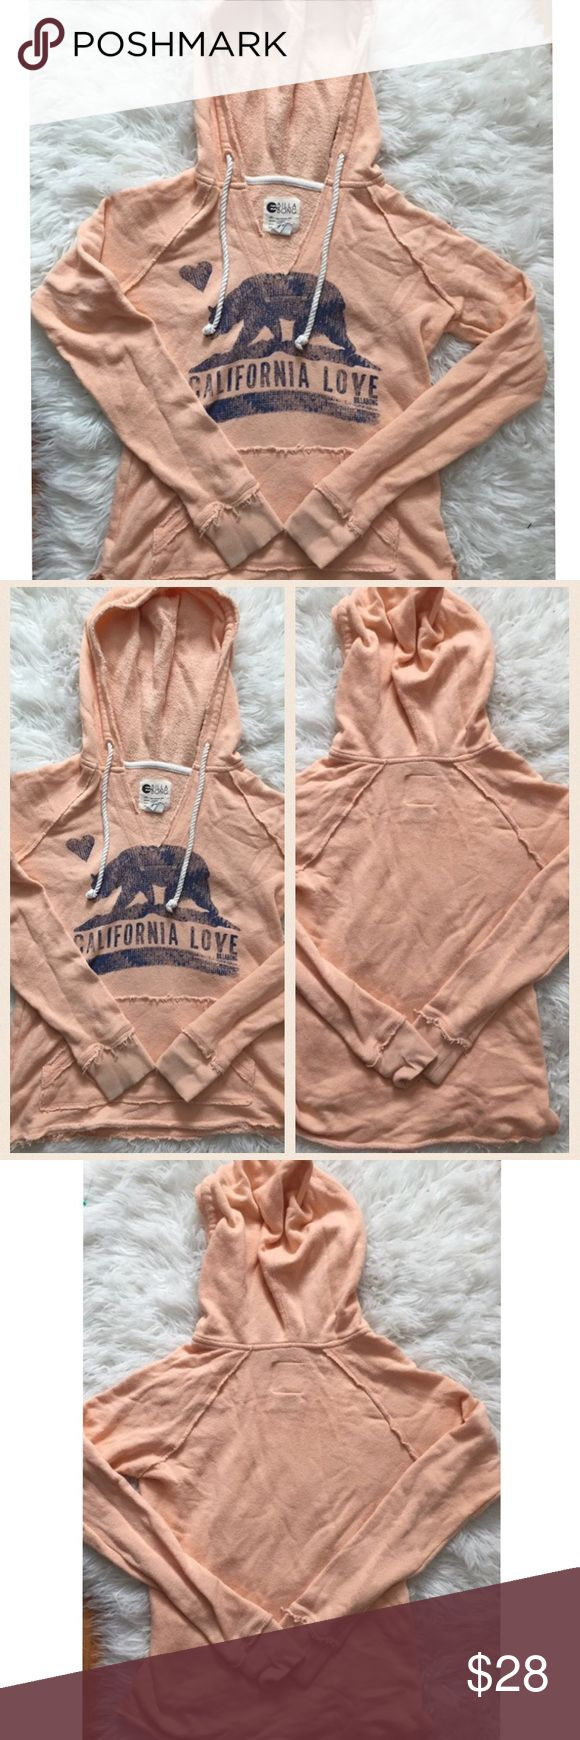 Billabong Peach Colored California Sweatshirt California sweater by Billabong. Peachy color. Has a very vintage look to it. There is no pilling but the fabric is intentionally distressed to look vintage like.   #5031733 Billabong Tops Sweatshirts & Hoodies